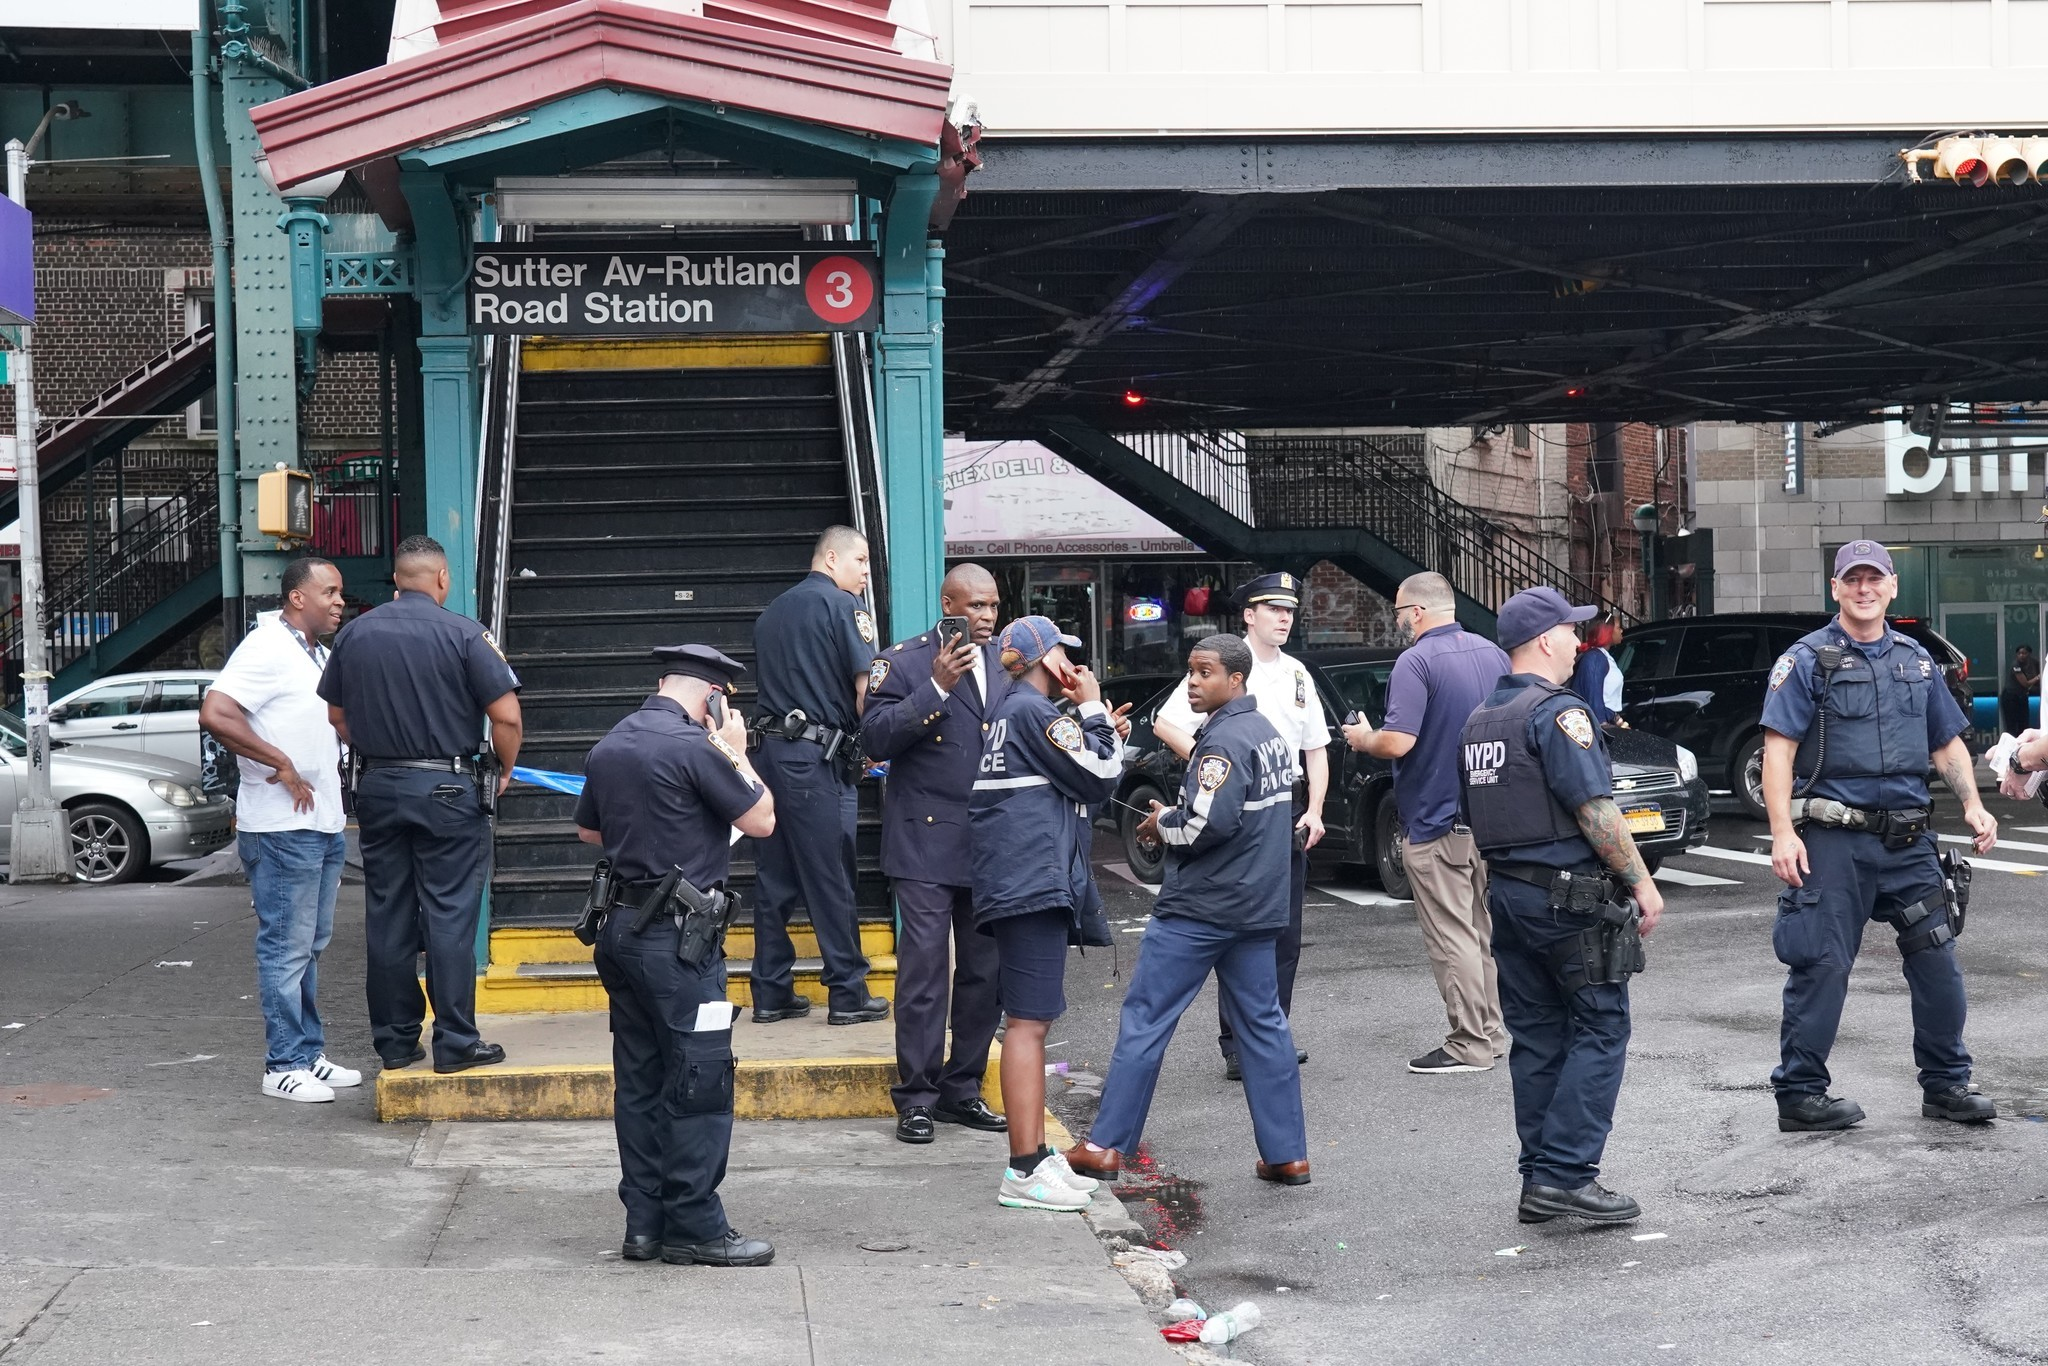 Off-duty transit worker shot in arm on Brooklyn subway, cops say | New York Daily News